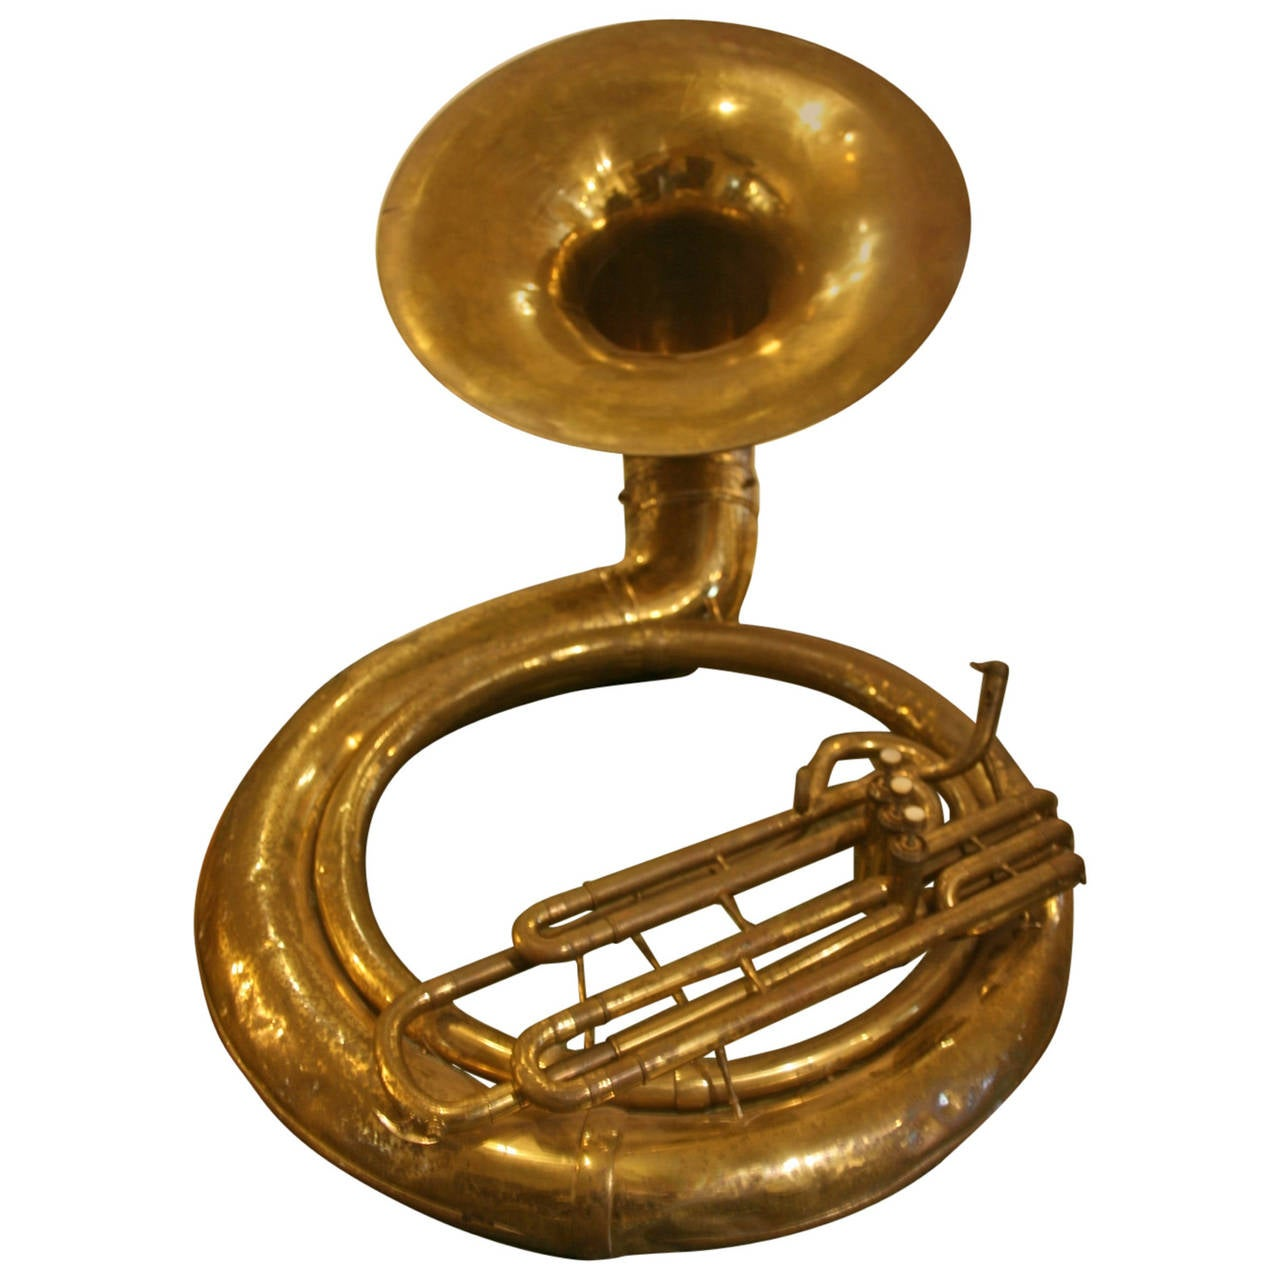 Giant 19th c. Sousaphone